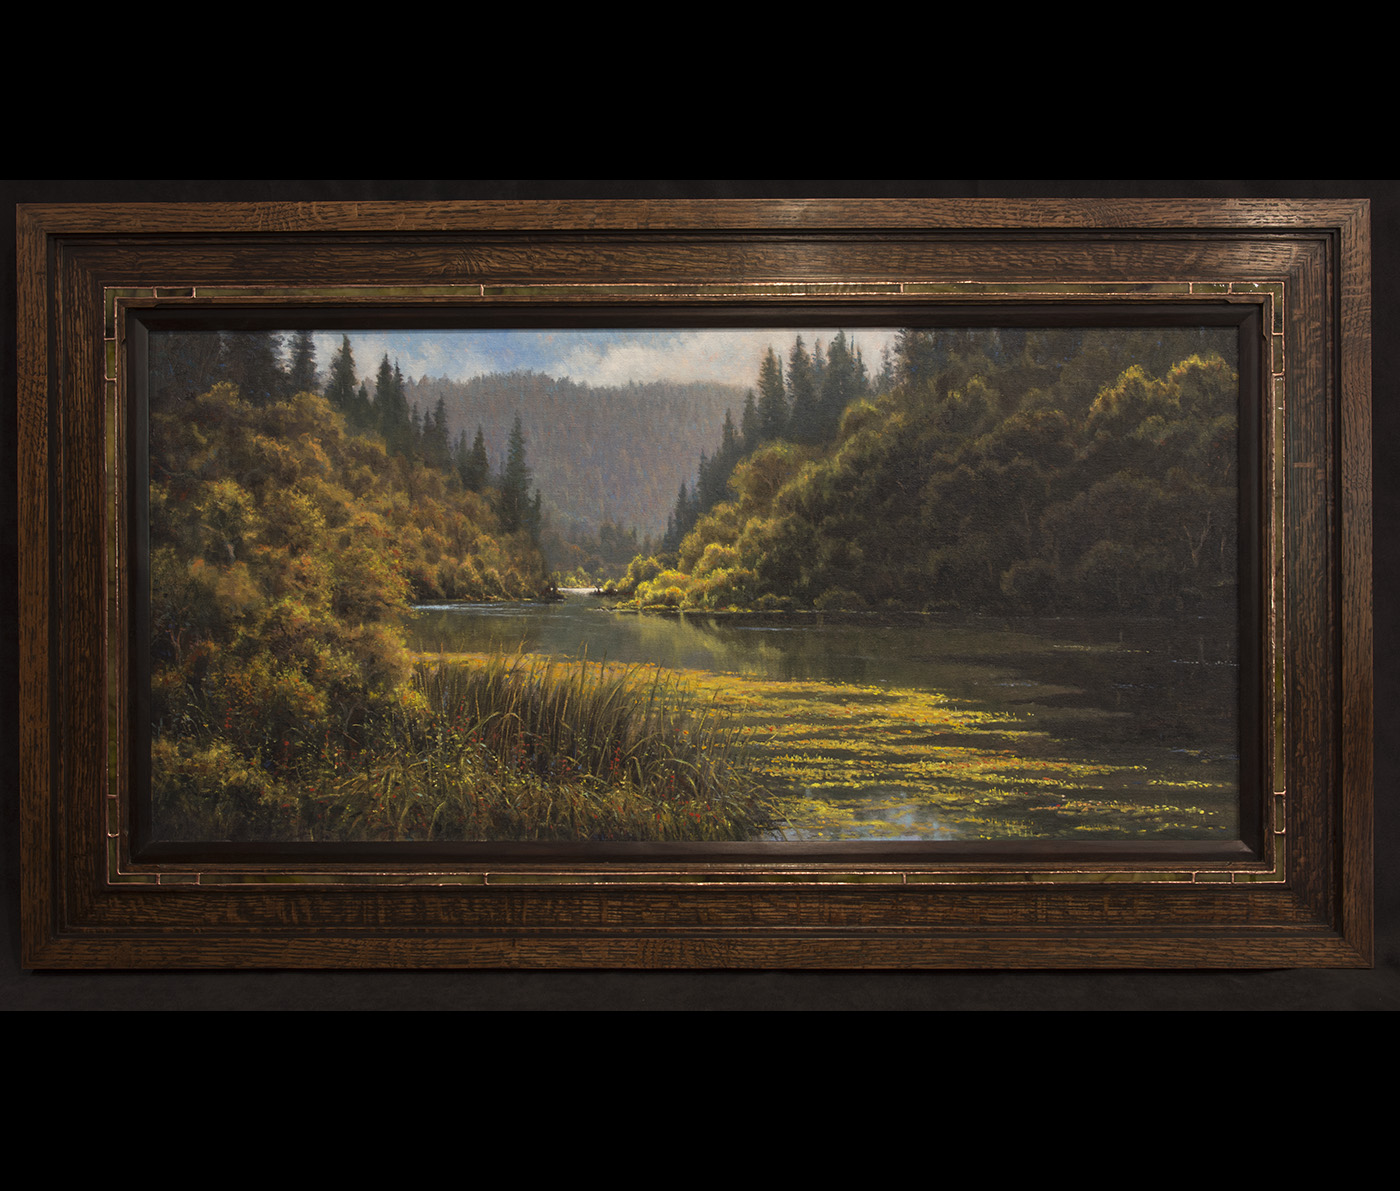 craftsman style frames – The Artwork of Dave Sellers